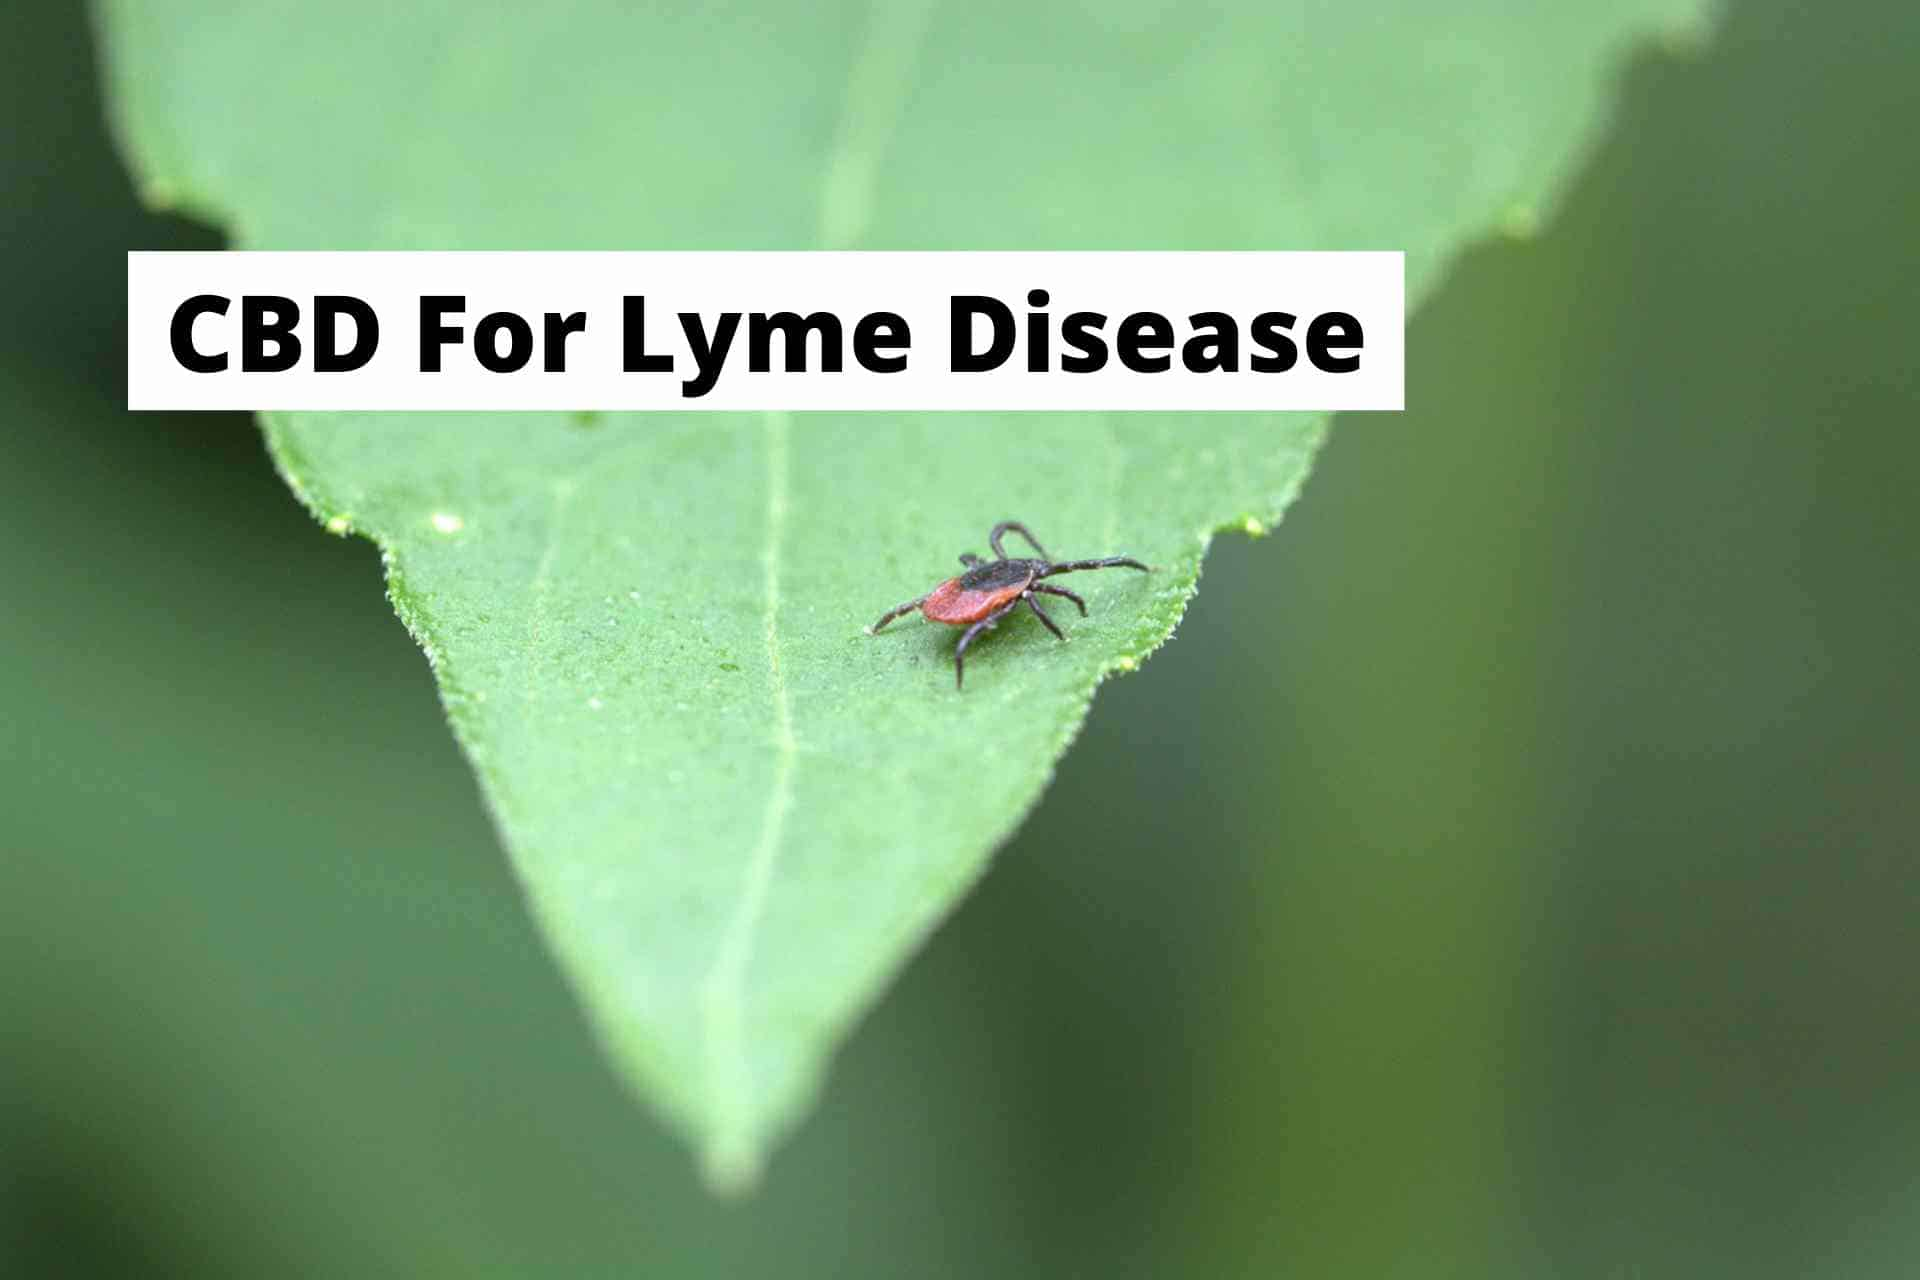 CBD for Lyme Disease